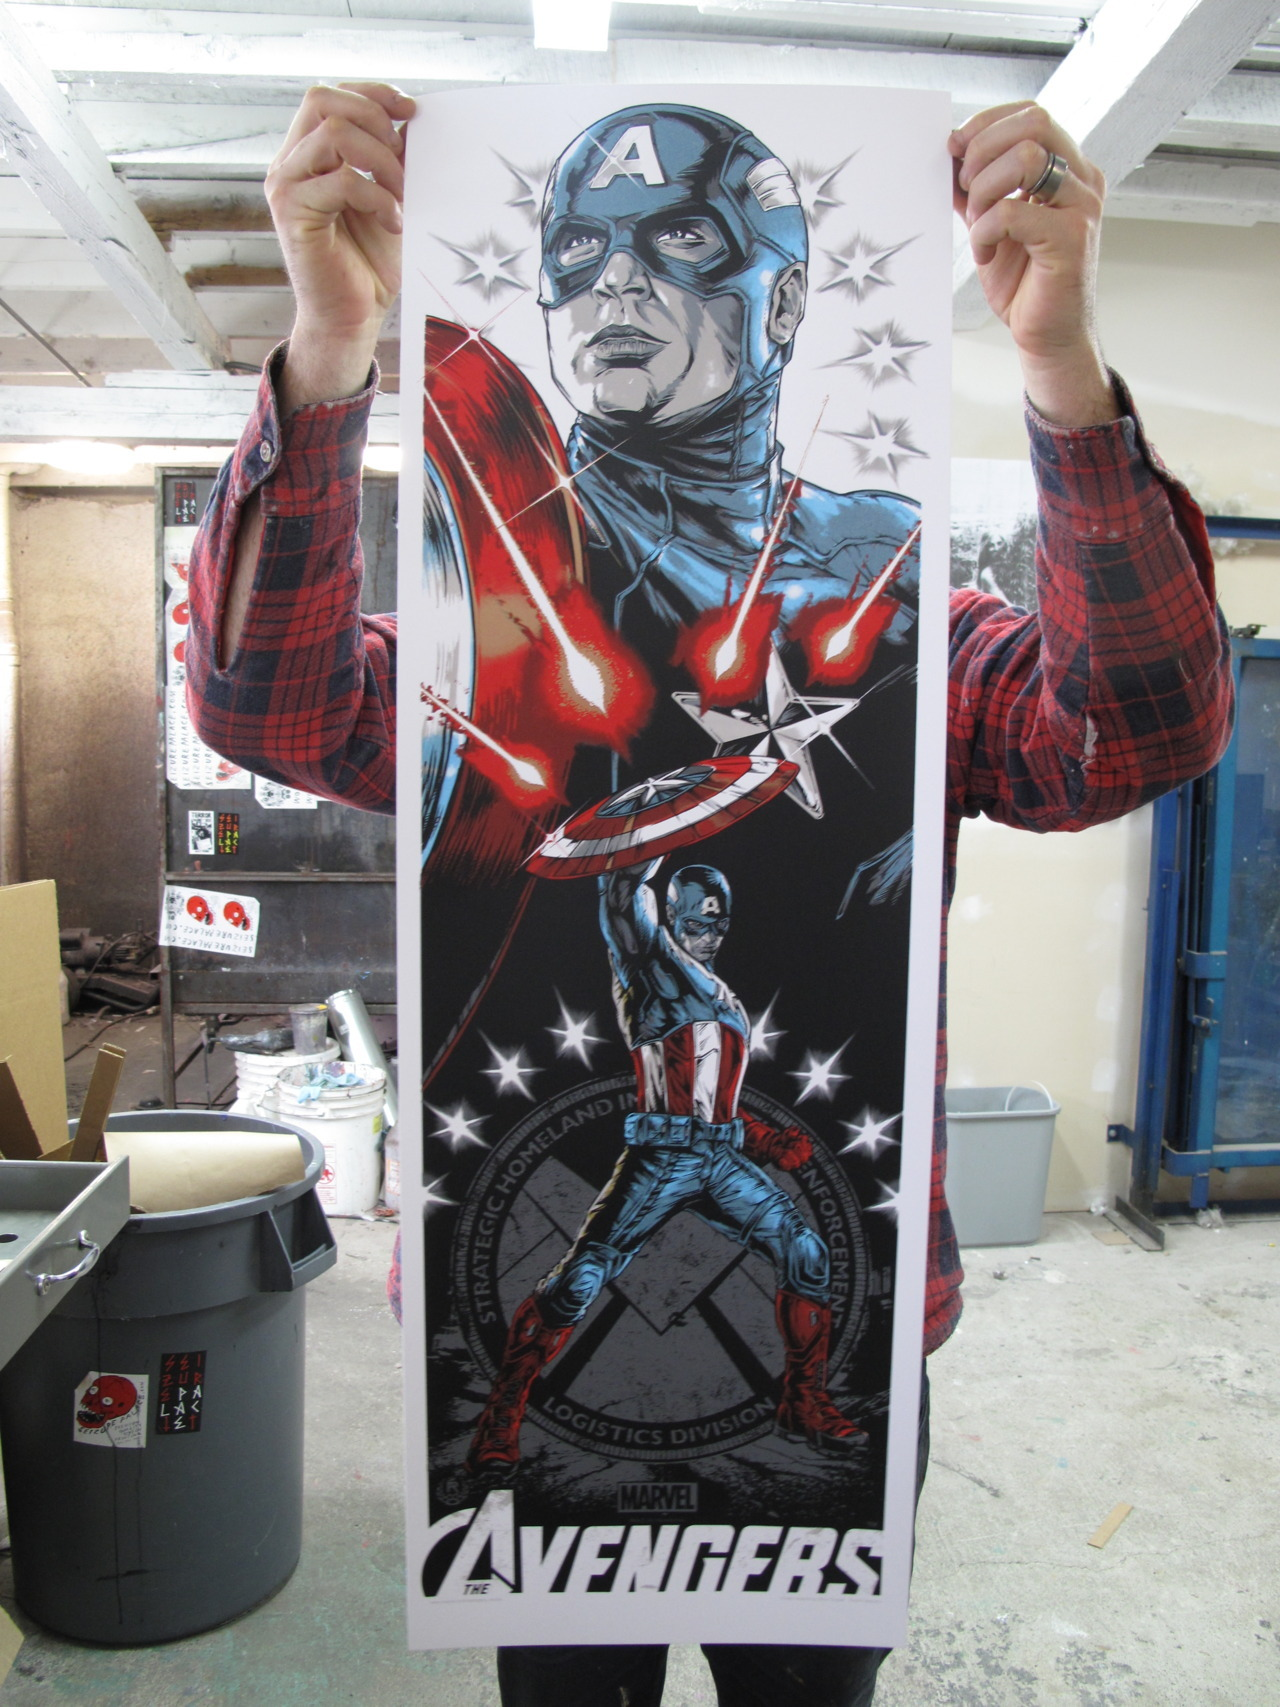 """CAPTAIN AMERICA""  BY RHYS COOPER  FOR GALLERY 1988'S""ASSEMBLE"" SHOW ON MAY 3RD 6 COLORS INCLUDING 2 METALLICS 12"" X 36""  COUGAR 100LB. COVER IN WHITE"